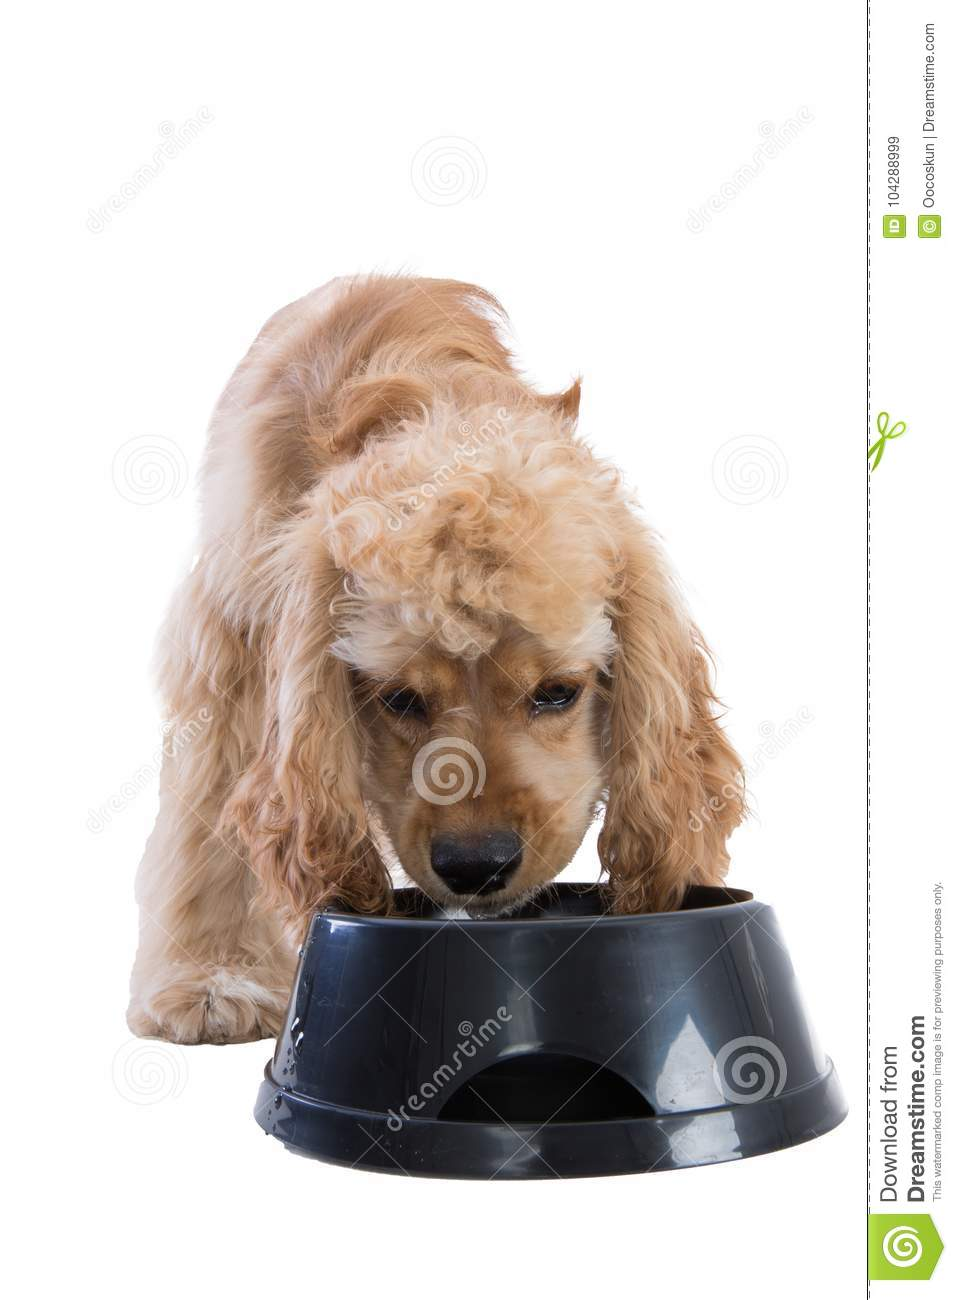 Cute Cocker Spaniel Eating Dog Food From A Bowl Stock Image Image